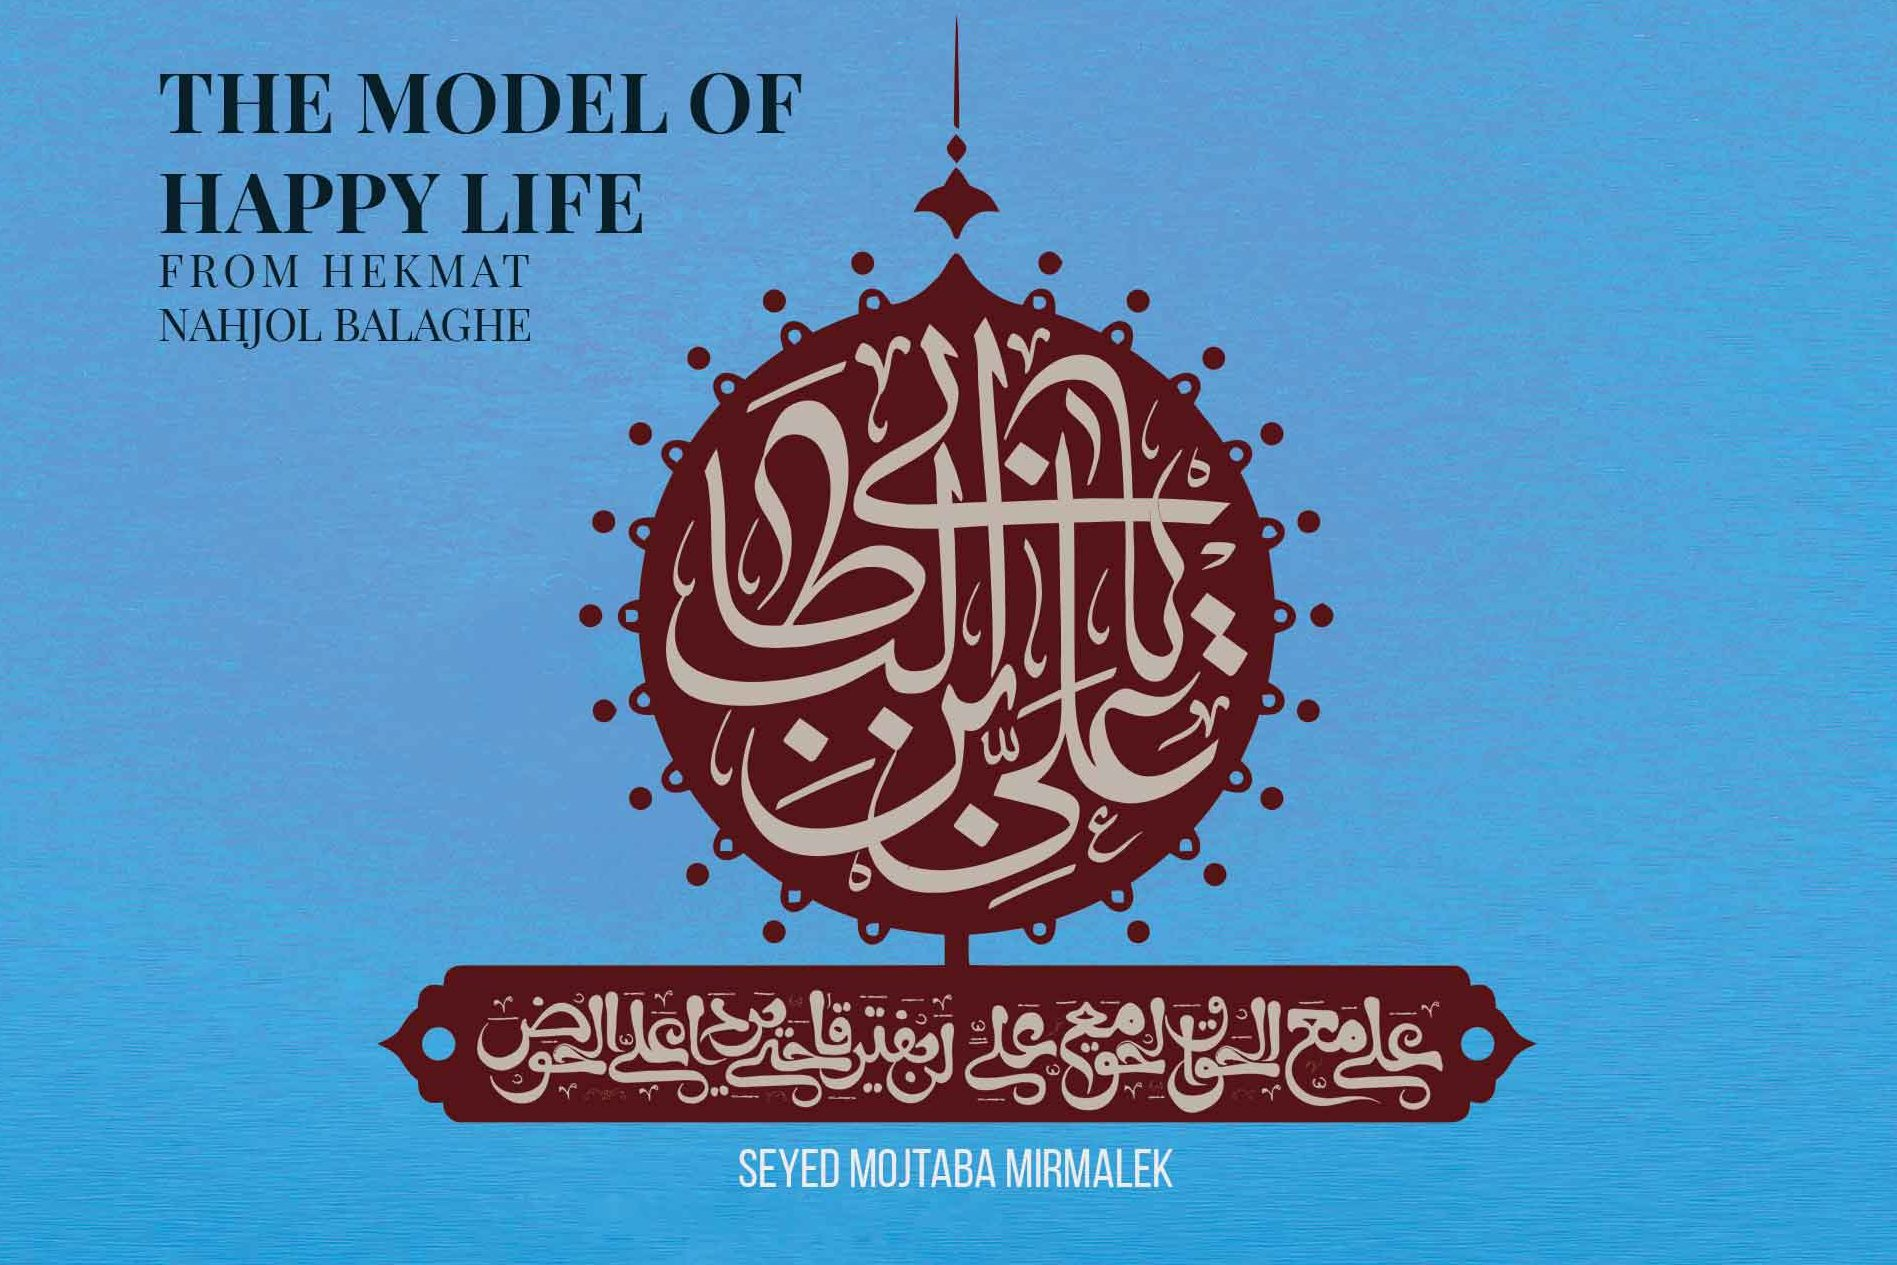 The Model of Happy Life